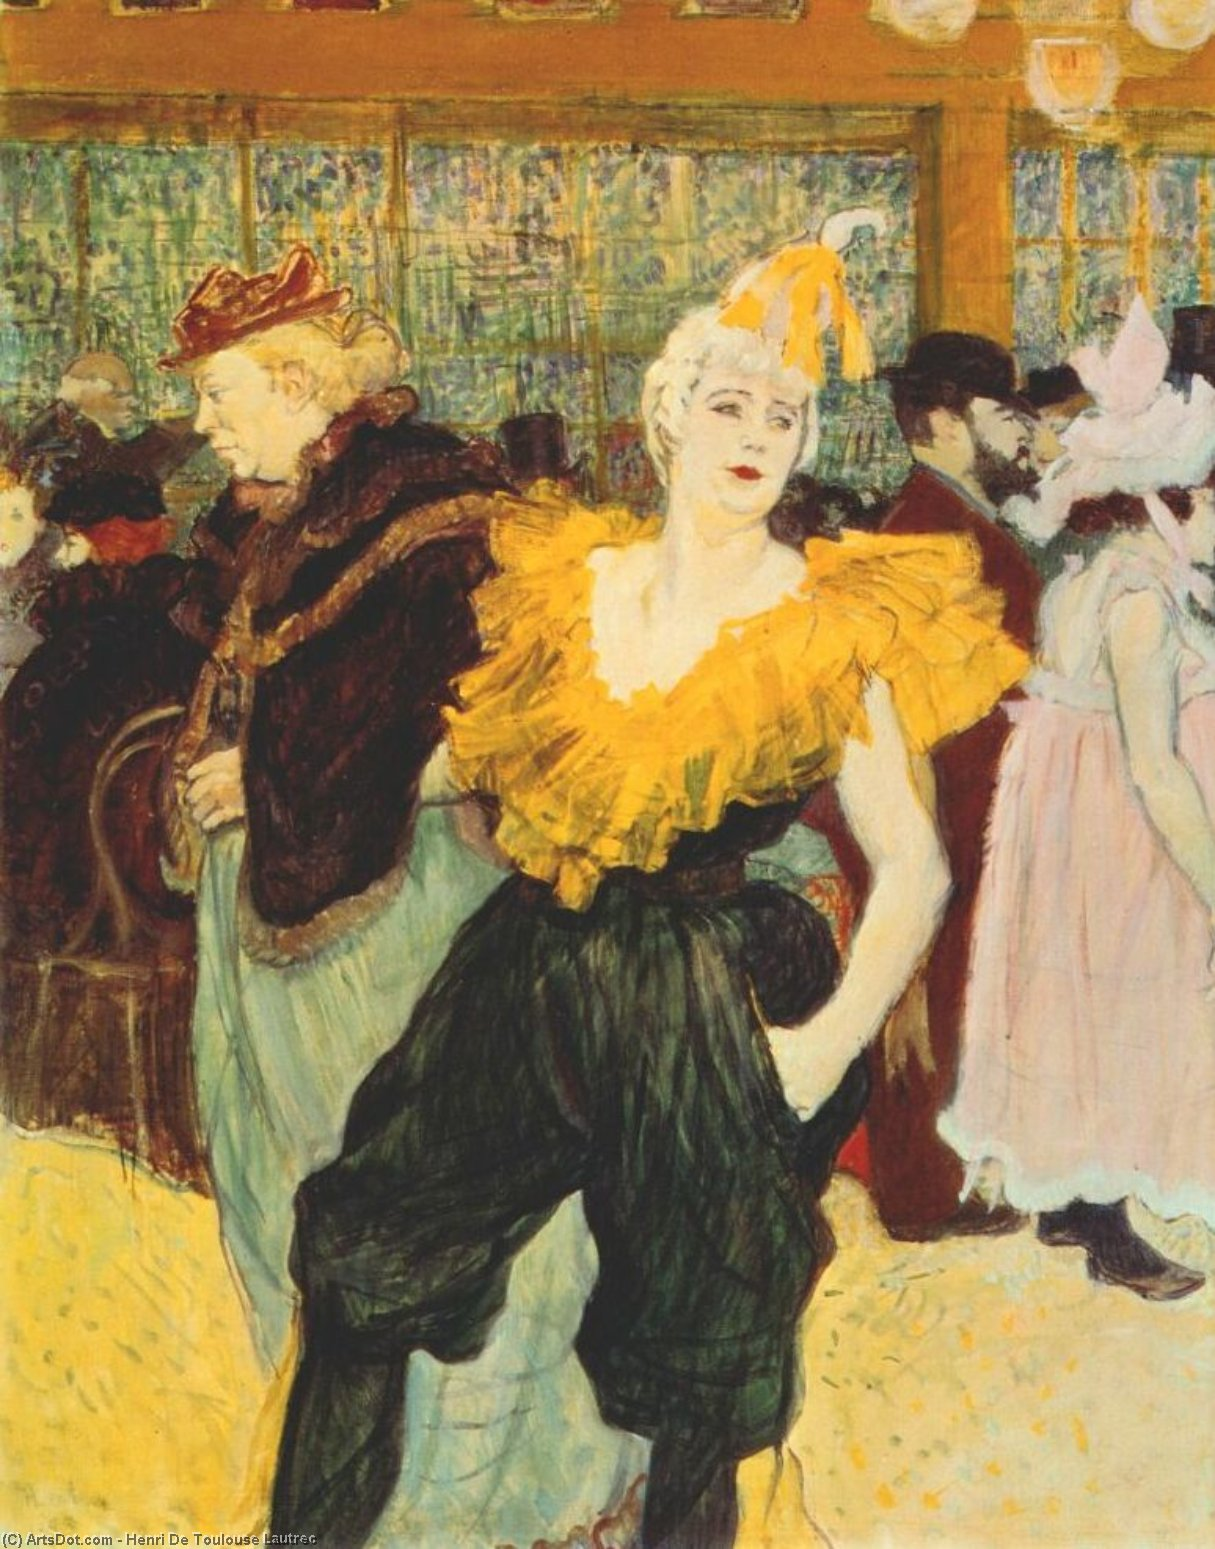 the clownesse cha-u-kao at the moulin rouge, 1895 by Henri De Toulouse Lautrec (1864-1901, France)